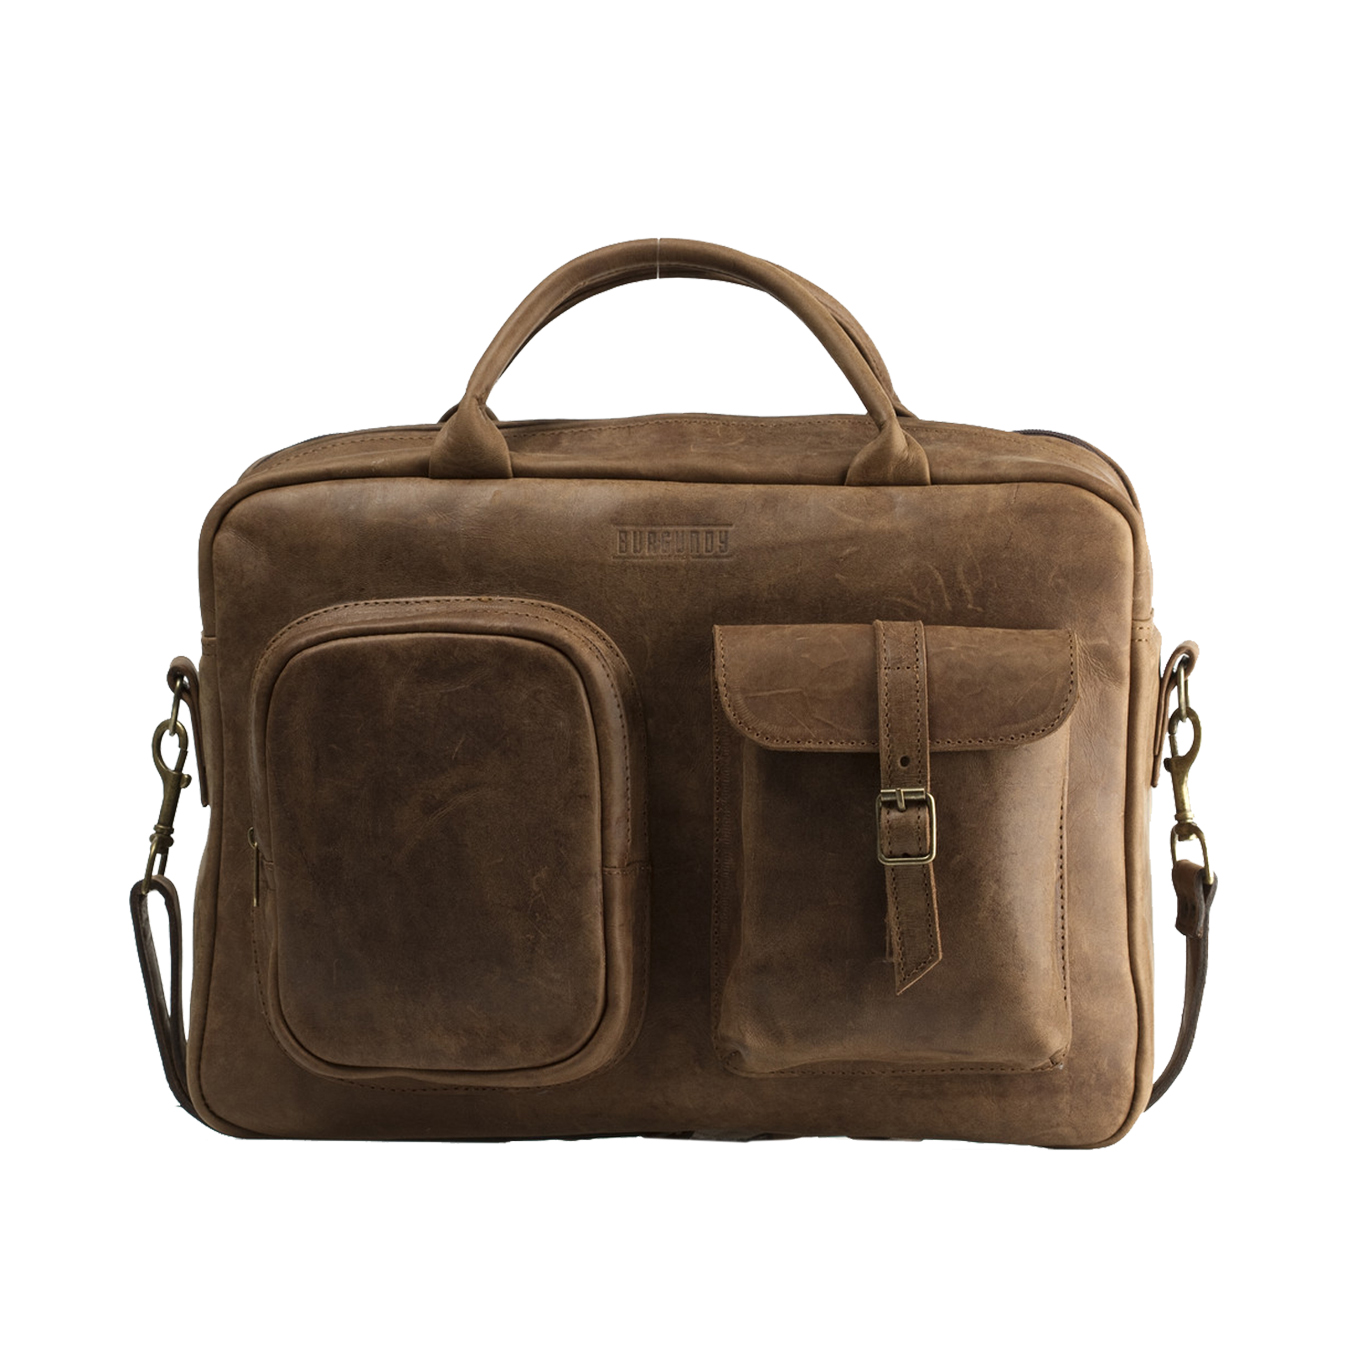 The Business Briefcase is beautifully crafted and will make a statement in the working place. Perfect to hold your laptop, files and books with exterior pockets for extras.    FEATURES:   Exterior zip pocket with leather trimmings Interior padded foam lining for laptop protection Light brown cotton canvas lining Interior zip pocket with leather trimmings Two interior file pockets suitable for mobile phone, keys and a wallet     DIMENSIONS :  H 30cm x W 40cm x D 15cm